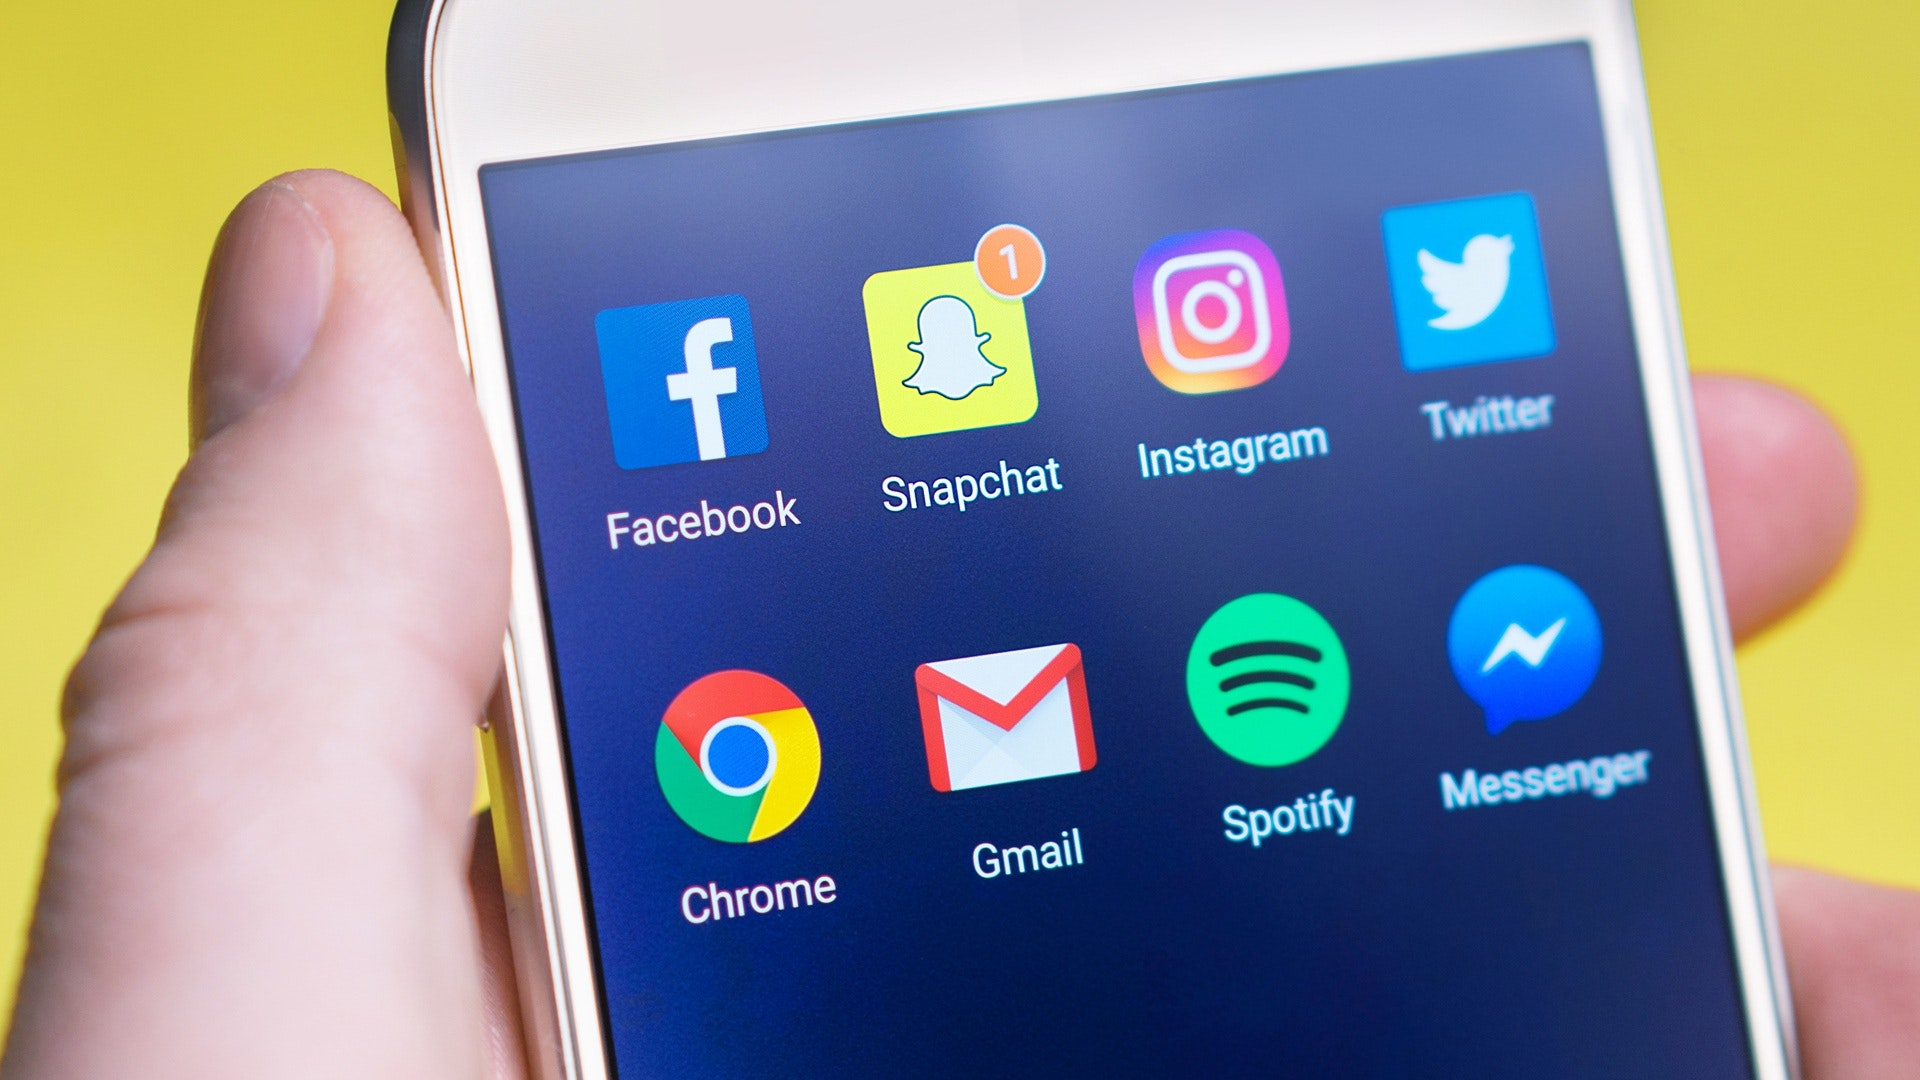 Yellow background. Close up of a hand holding a phone with the Facebook, Snapchat, Instagram, Twitter, Chrome, Gmail, Spotify and Messenger Apps.